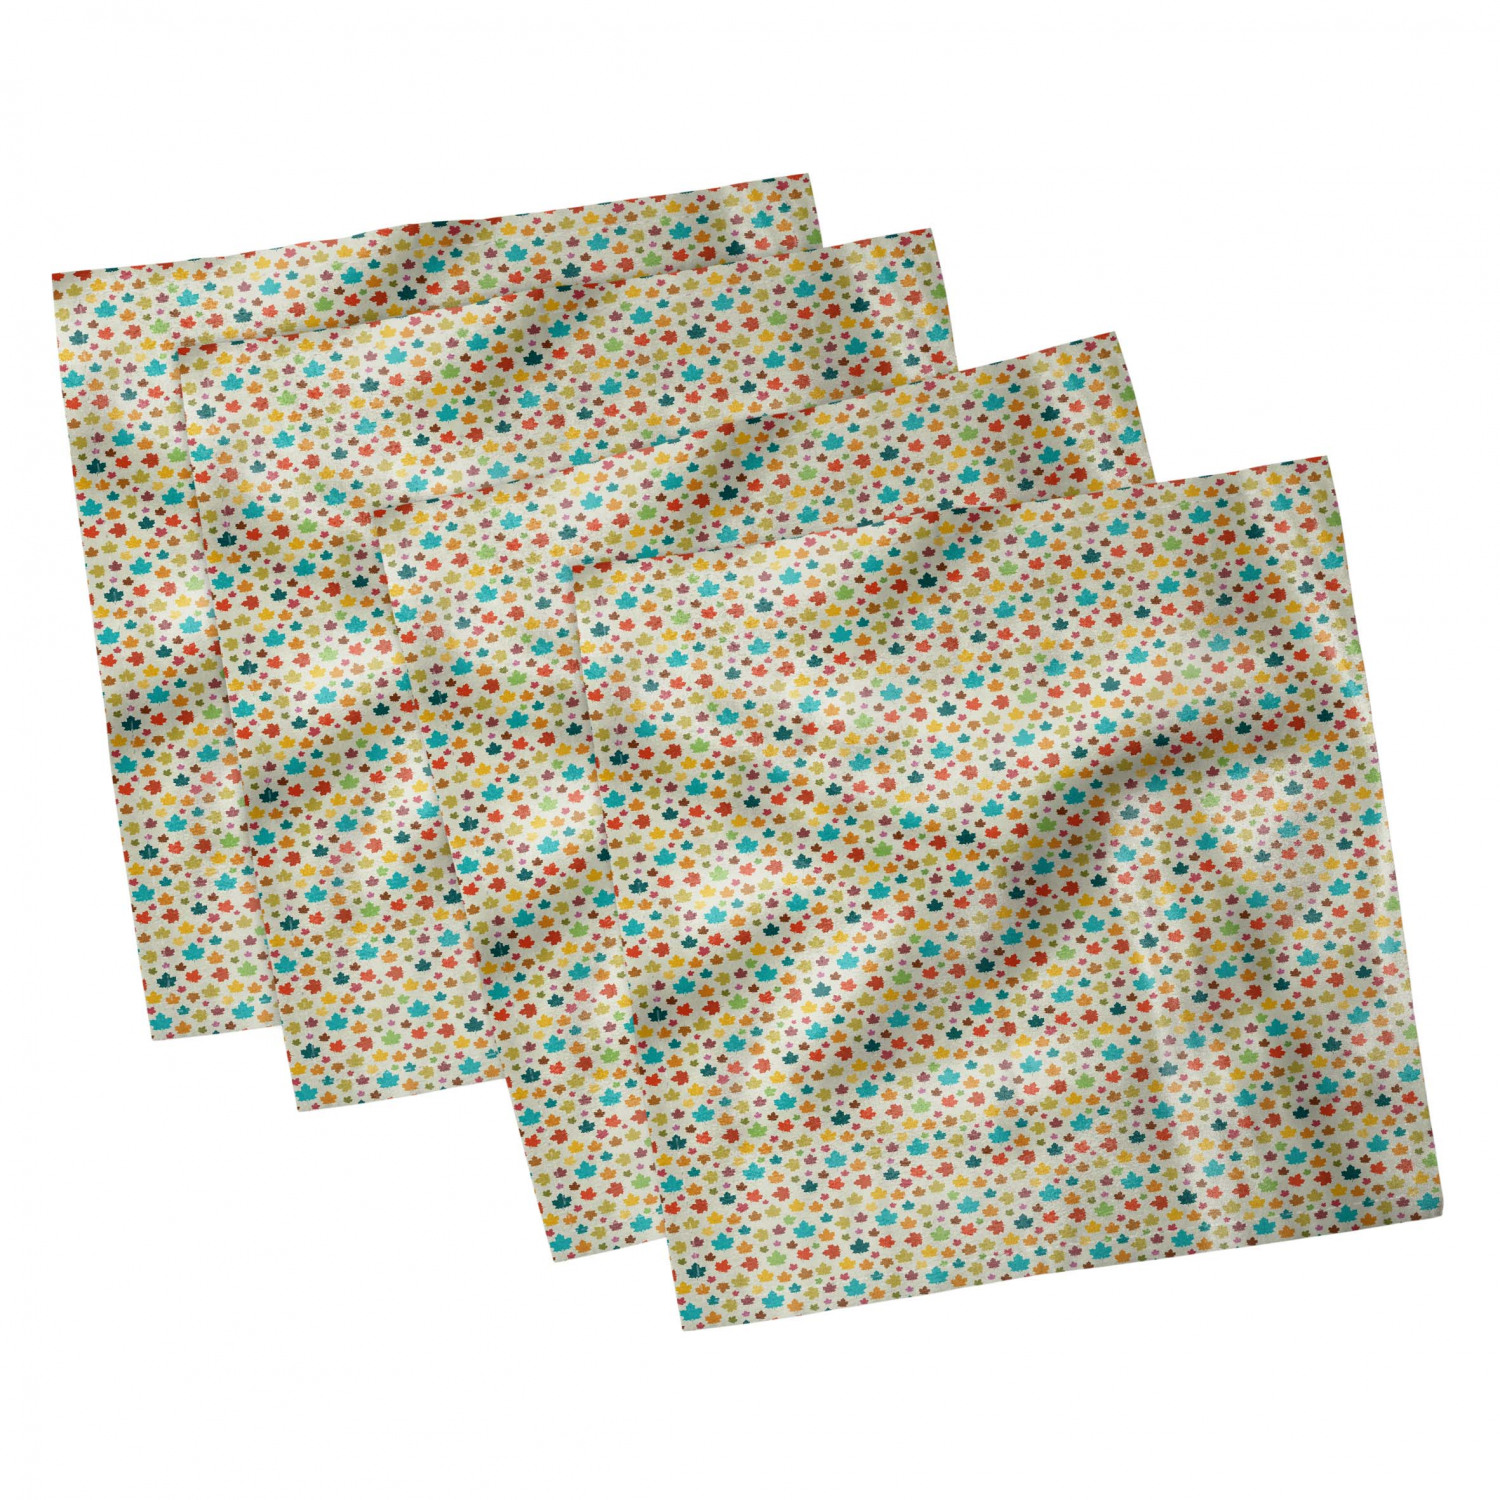 thumbnail 79 - Ambesonne-Autumn-Fall-Decorative-Satin-Napkins-Set-of-4-Party-Dinner-Fabric